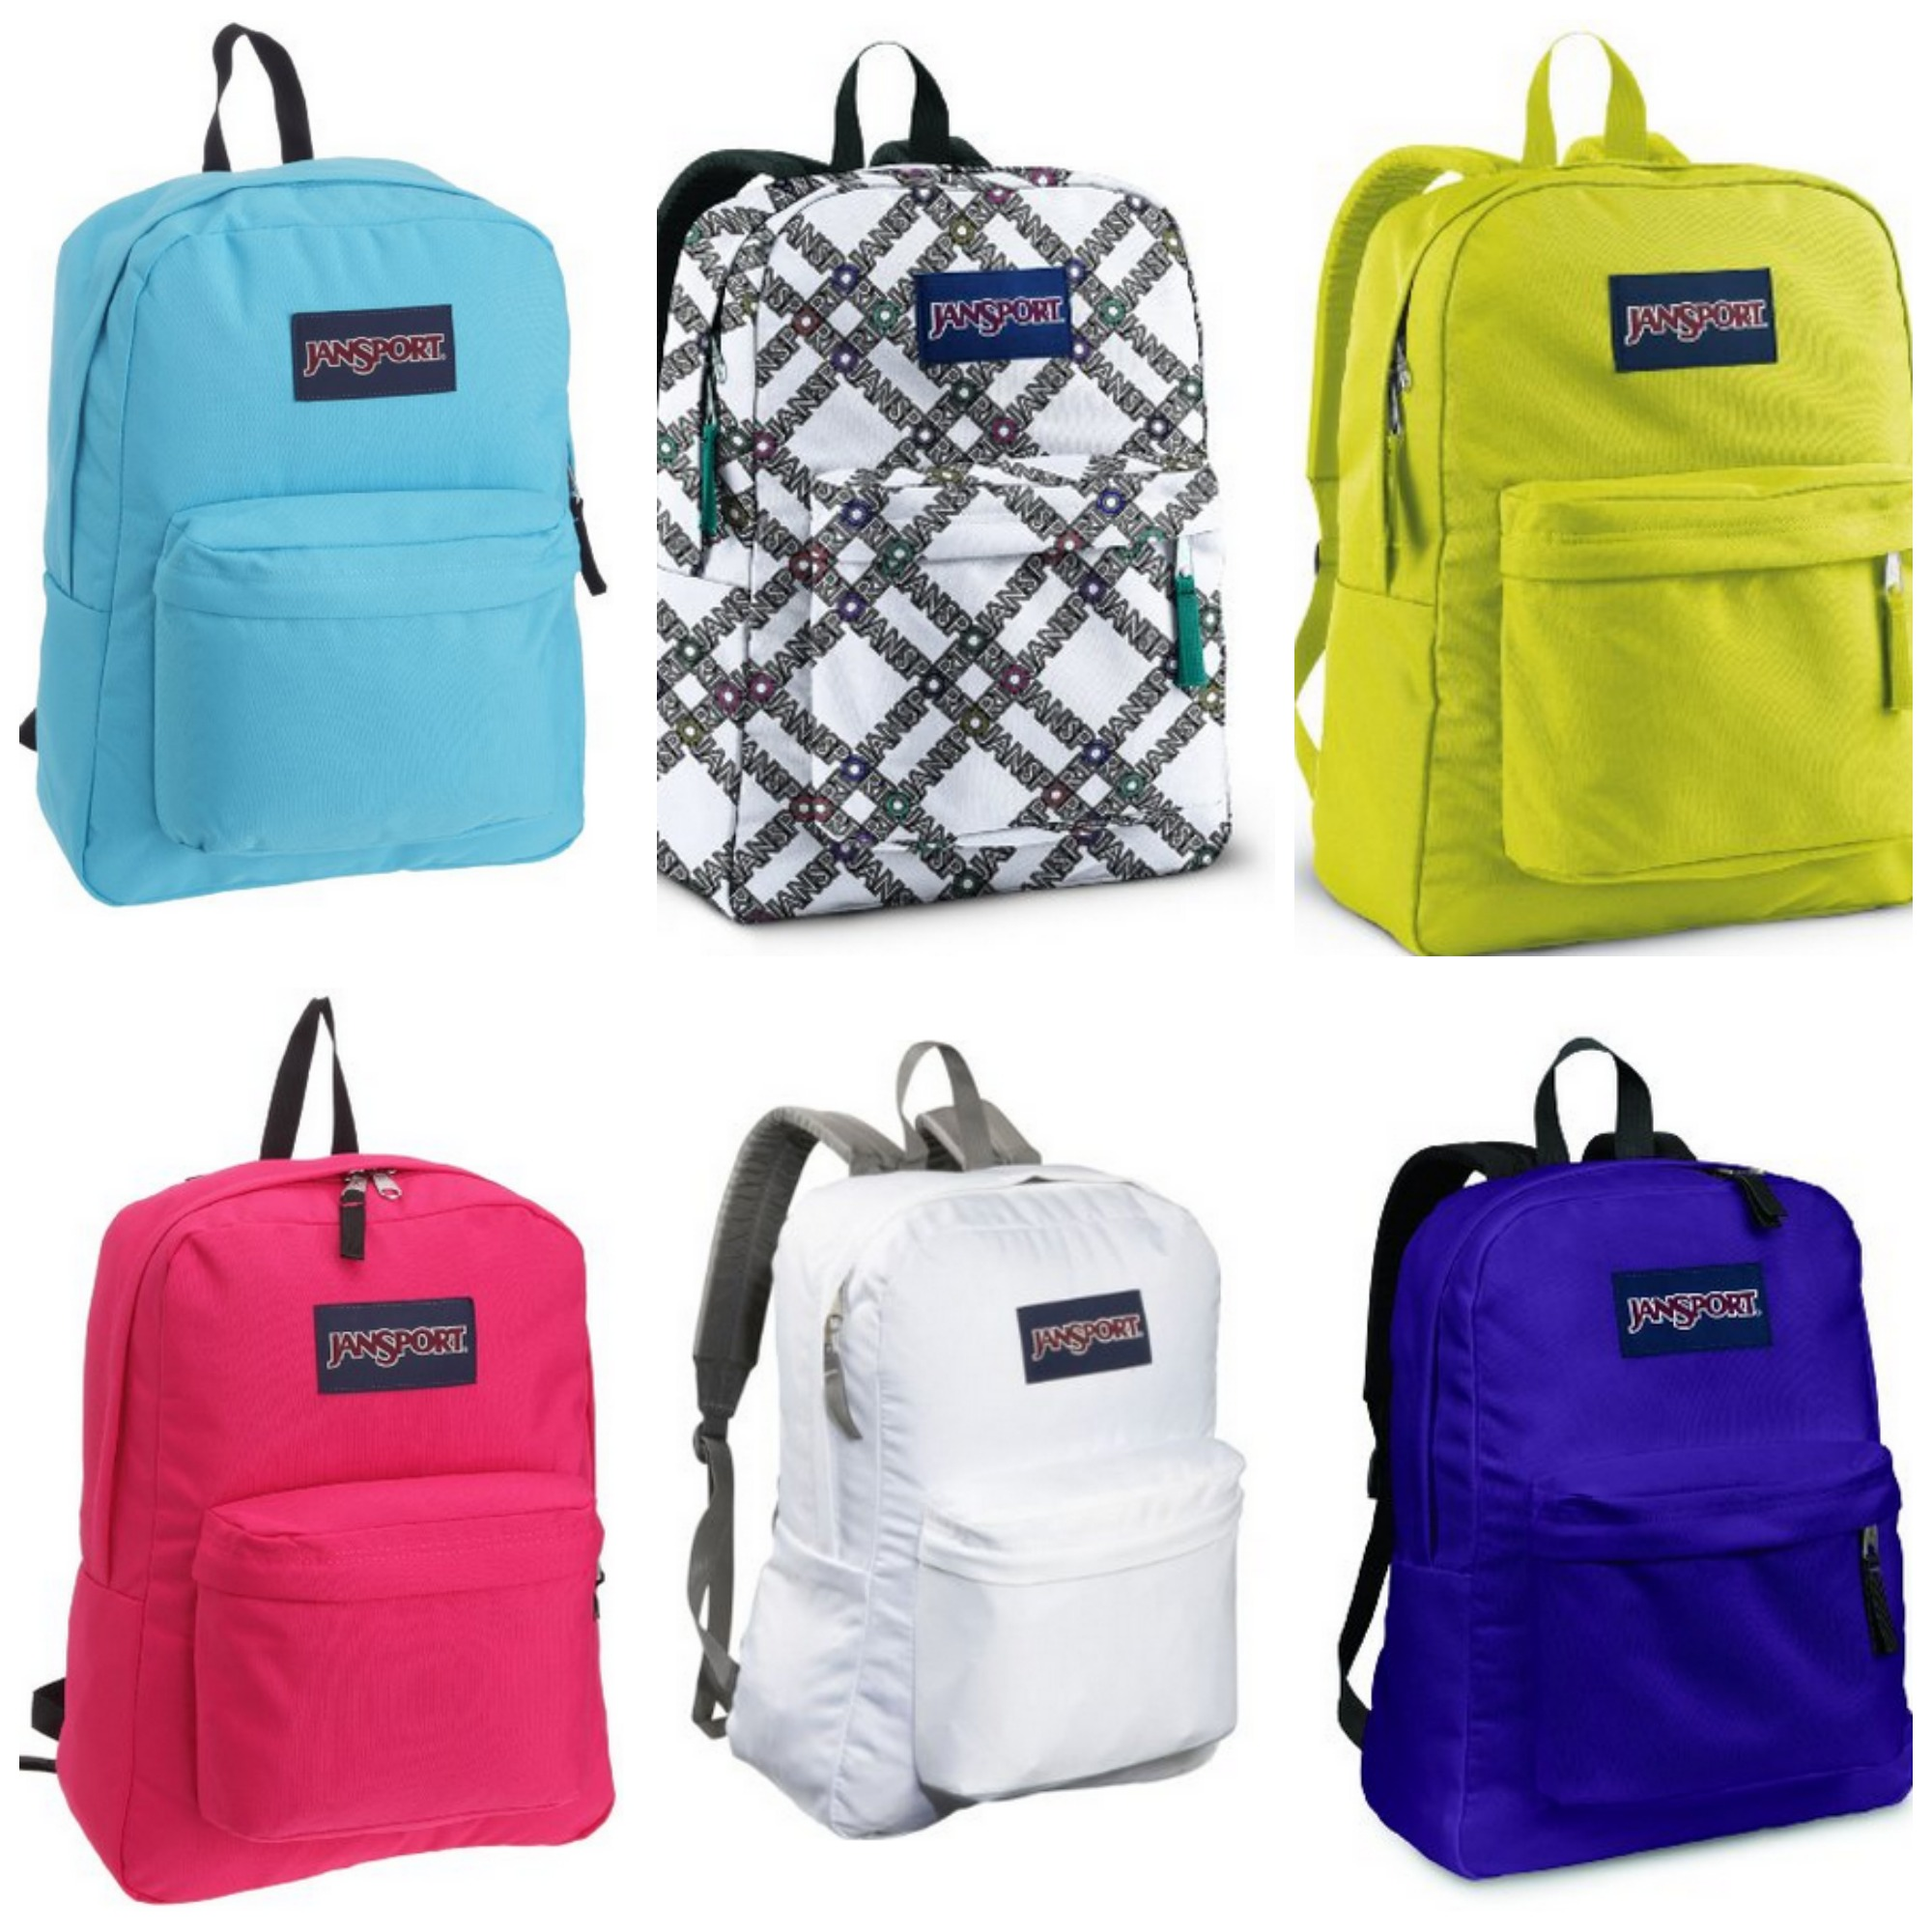 33d8334b8d Amazon has JanSport backpacks with a savings up to 43% OFF and priced as  low as  25.99 shipped! JanSport backpacks are defiantly a favorite and not  to ...